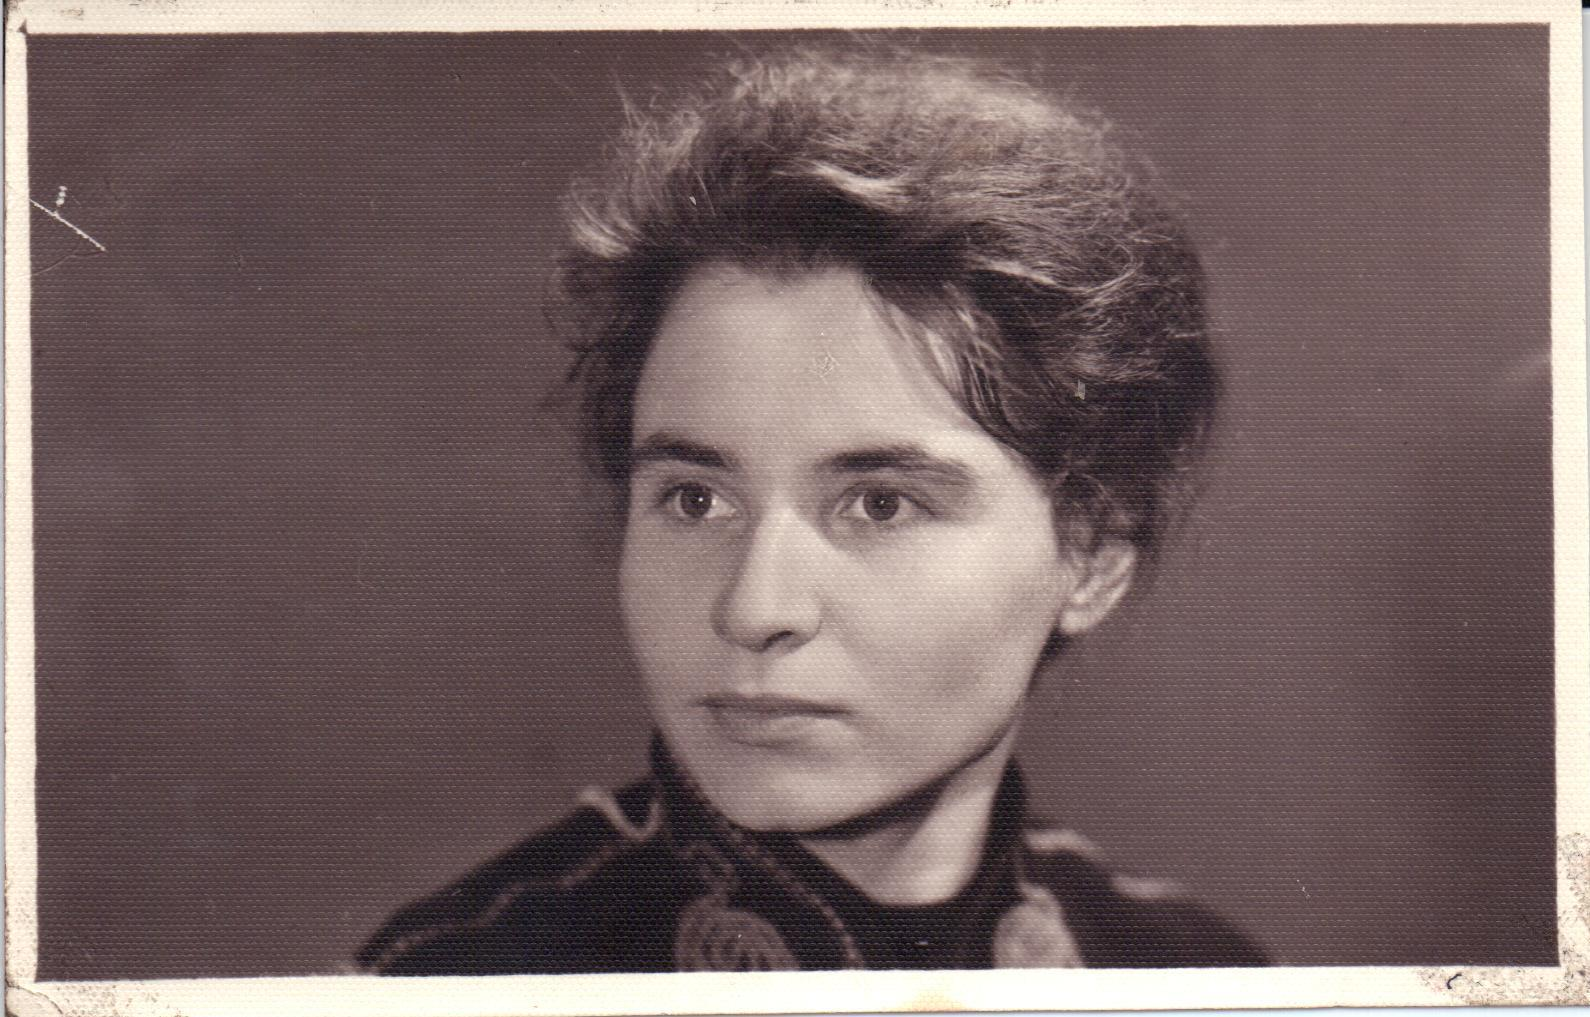 Photo of Nadia Svitlychna, 1960s